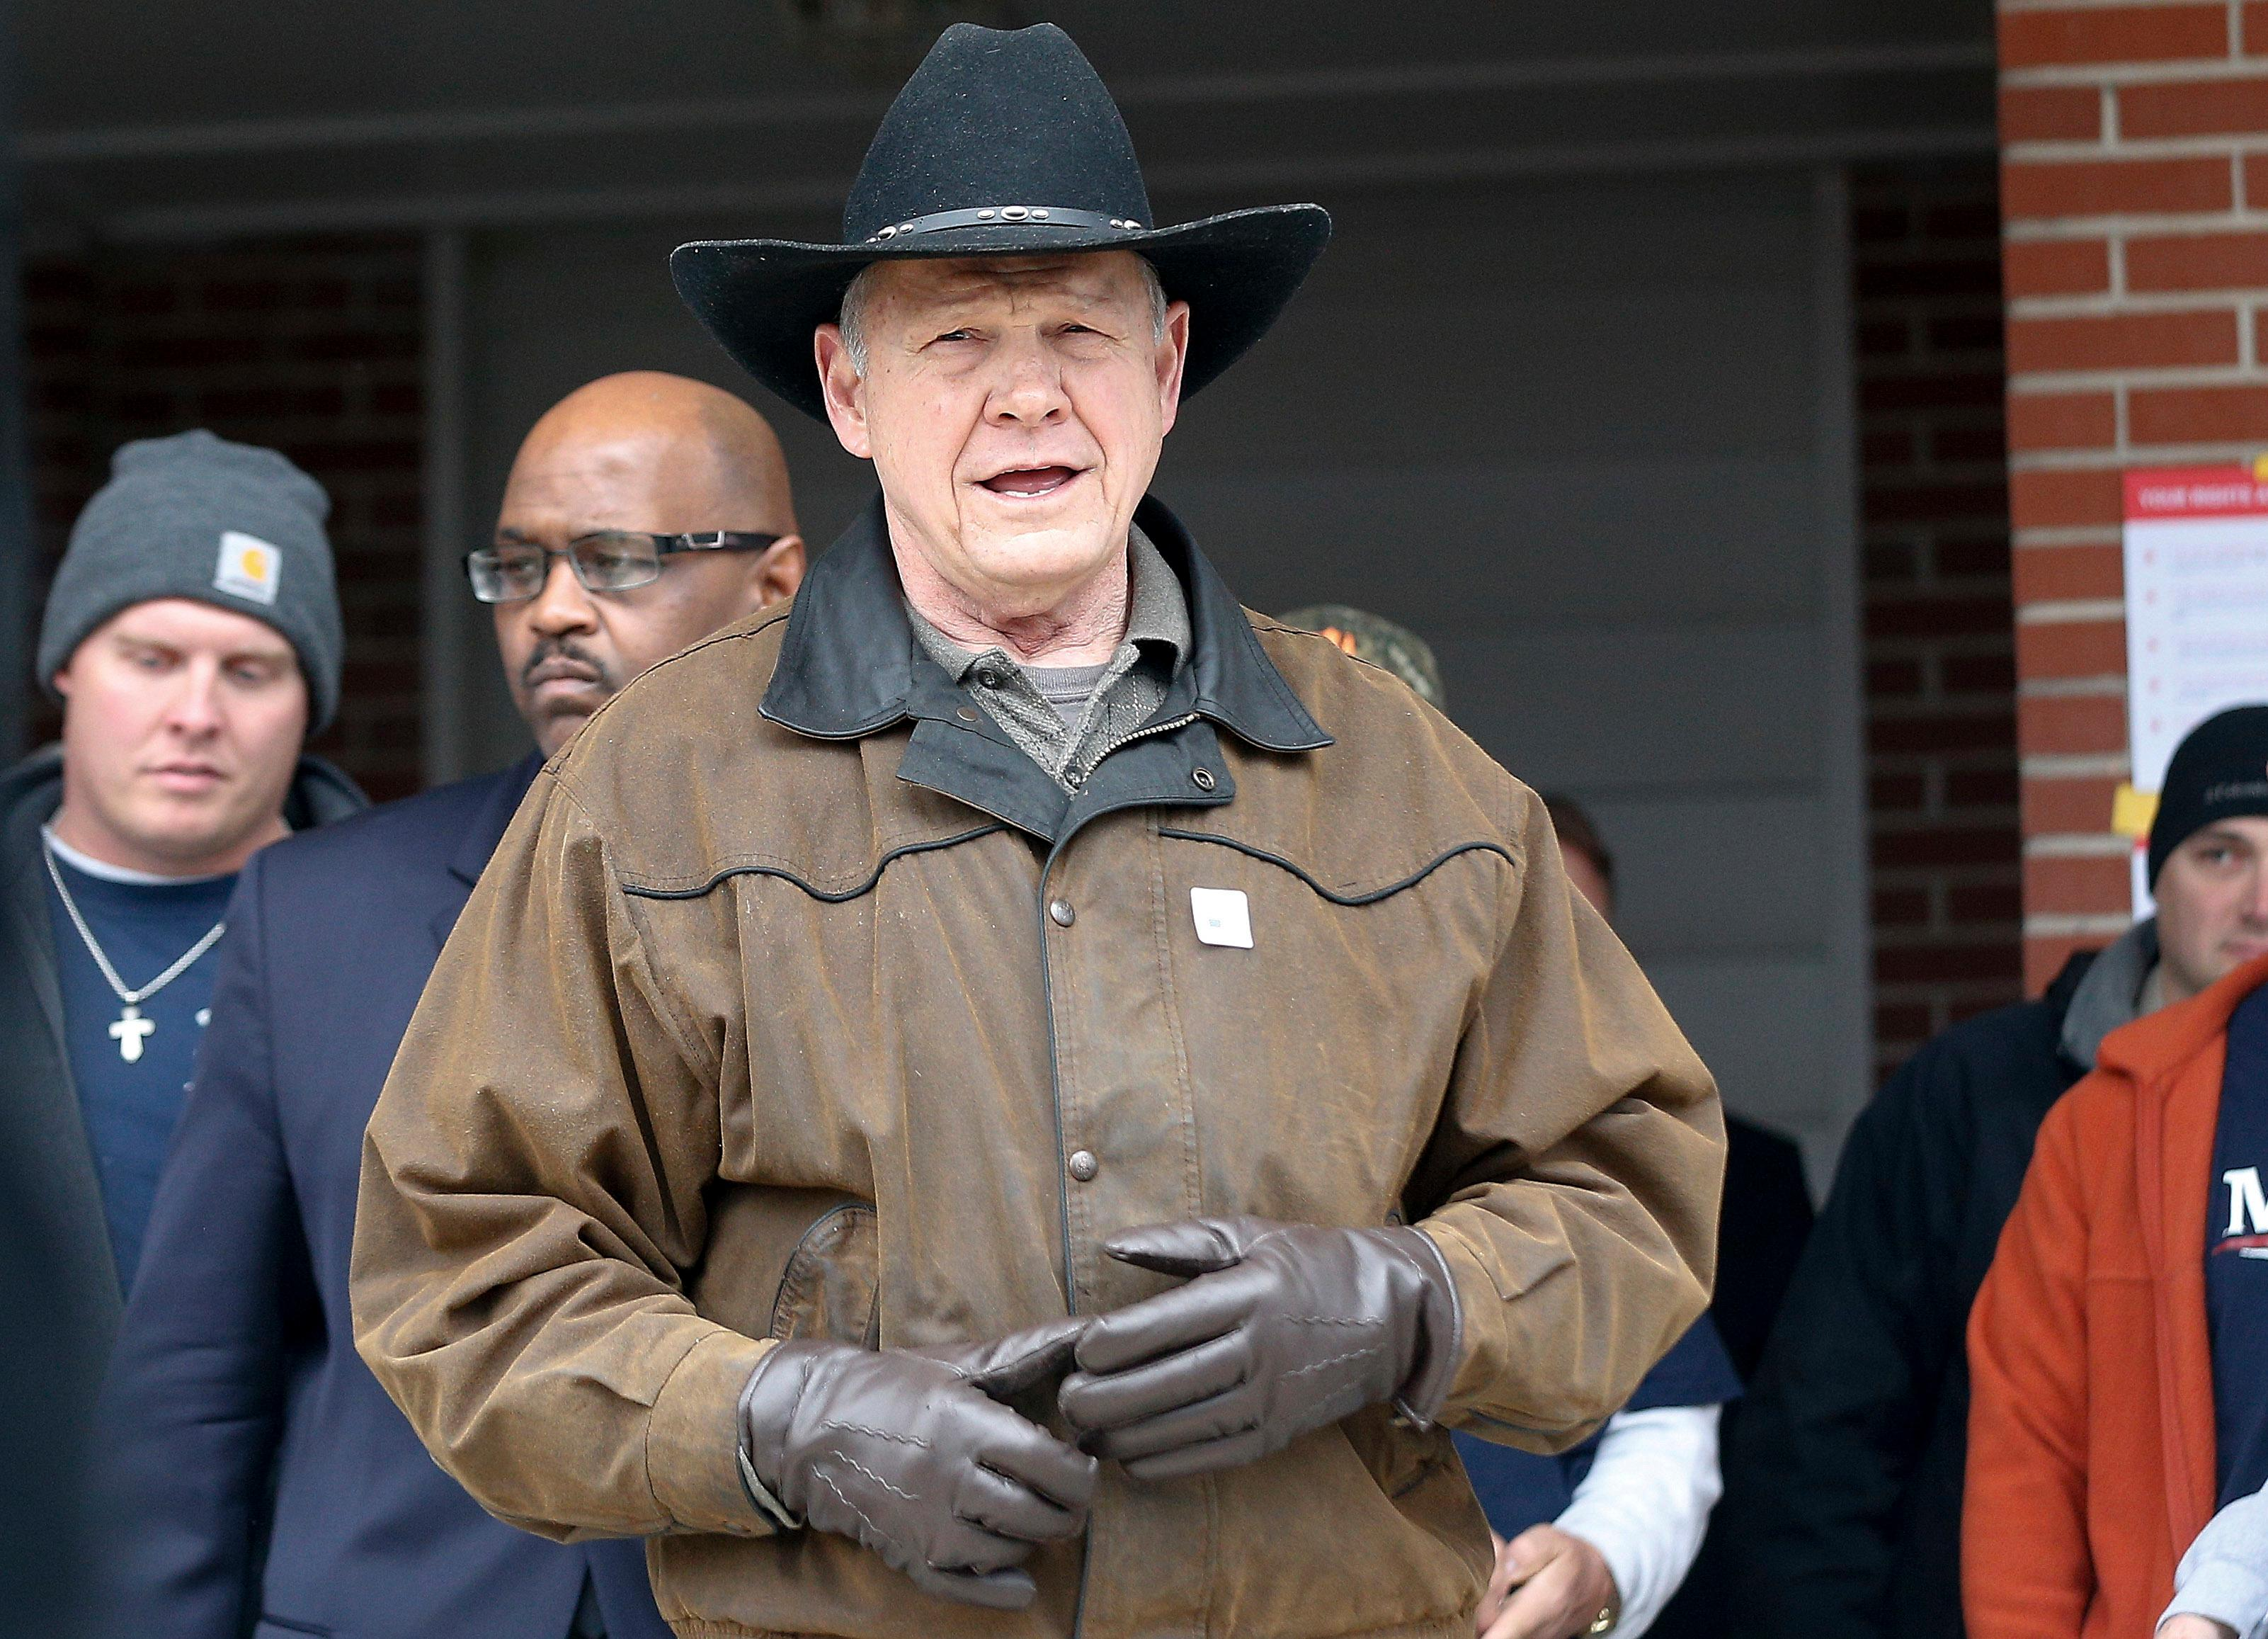 U.S. Senate candidate Roy Moore speaks to the media after he rode in on a horse to vote, Tuesday, Dec. 12, 2017, in Gallant, Ala. Alabama voters are deciding between Moore, former chief justice of the Alabama Supreme Court and Democrat Doug Jones.  (AP Photo/Brynn Anderson)